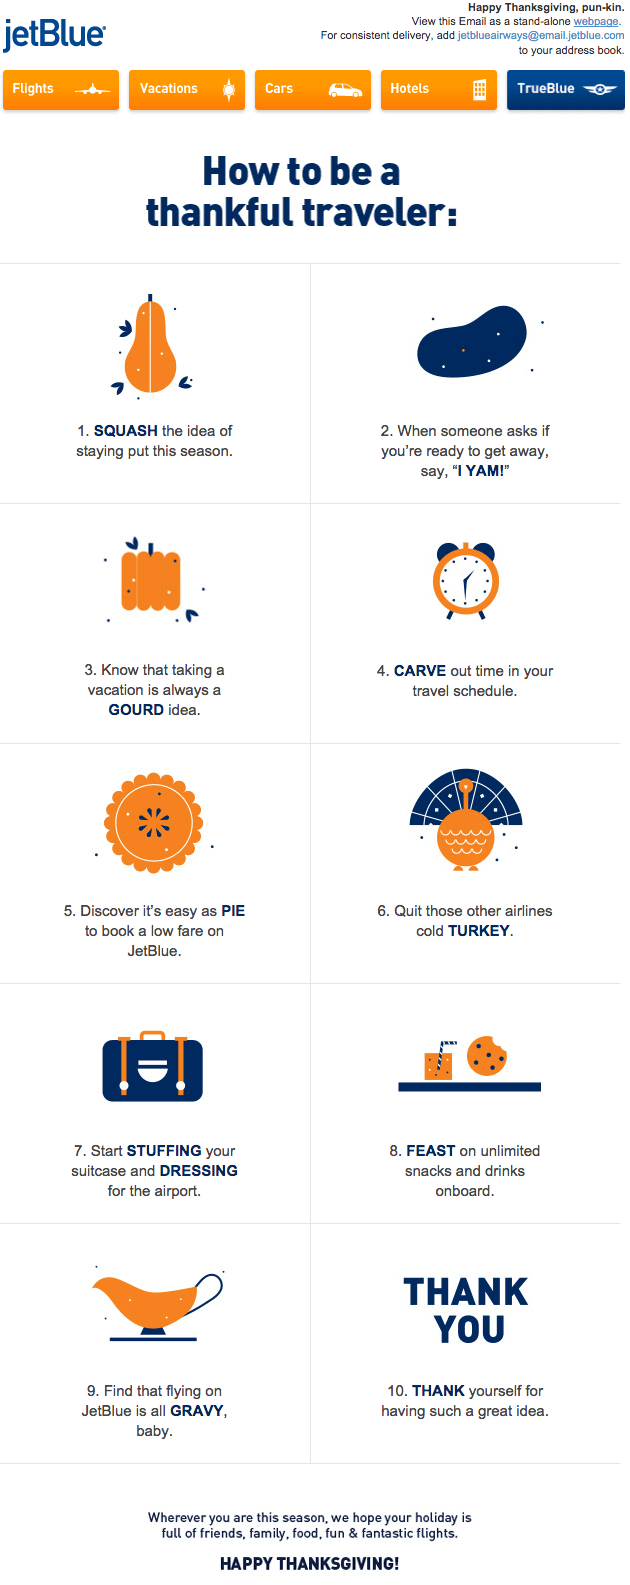 JetBlue: How to Be a Thankful Traveler